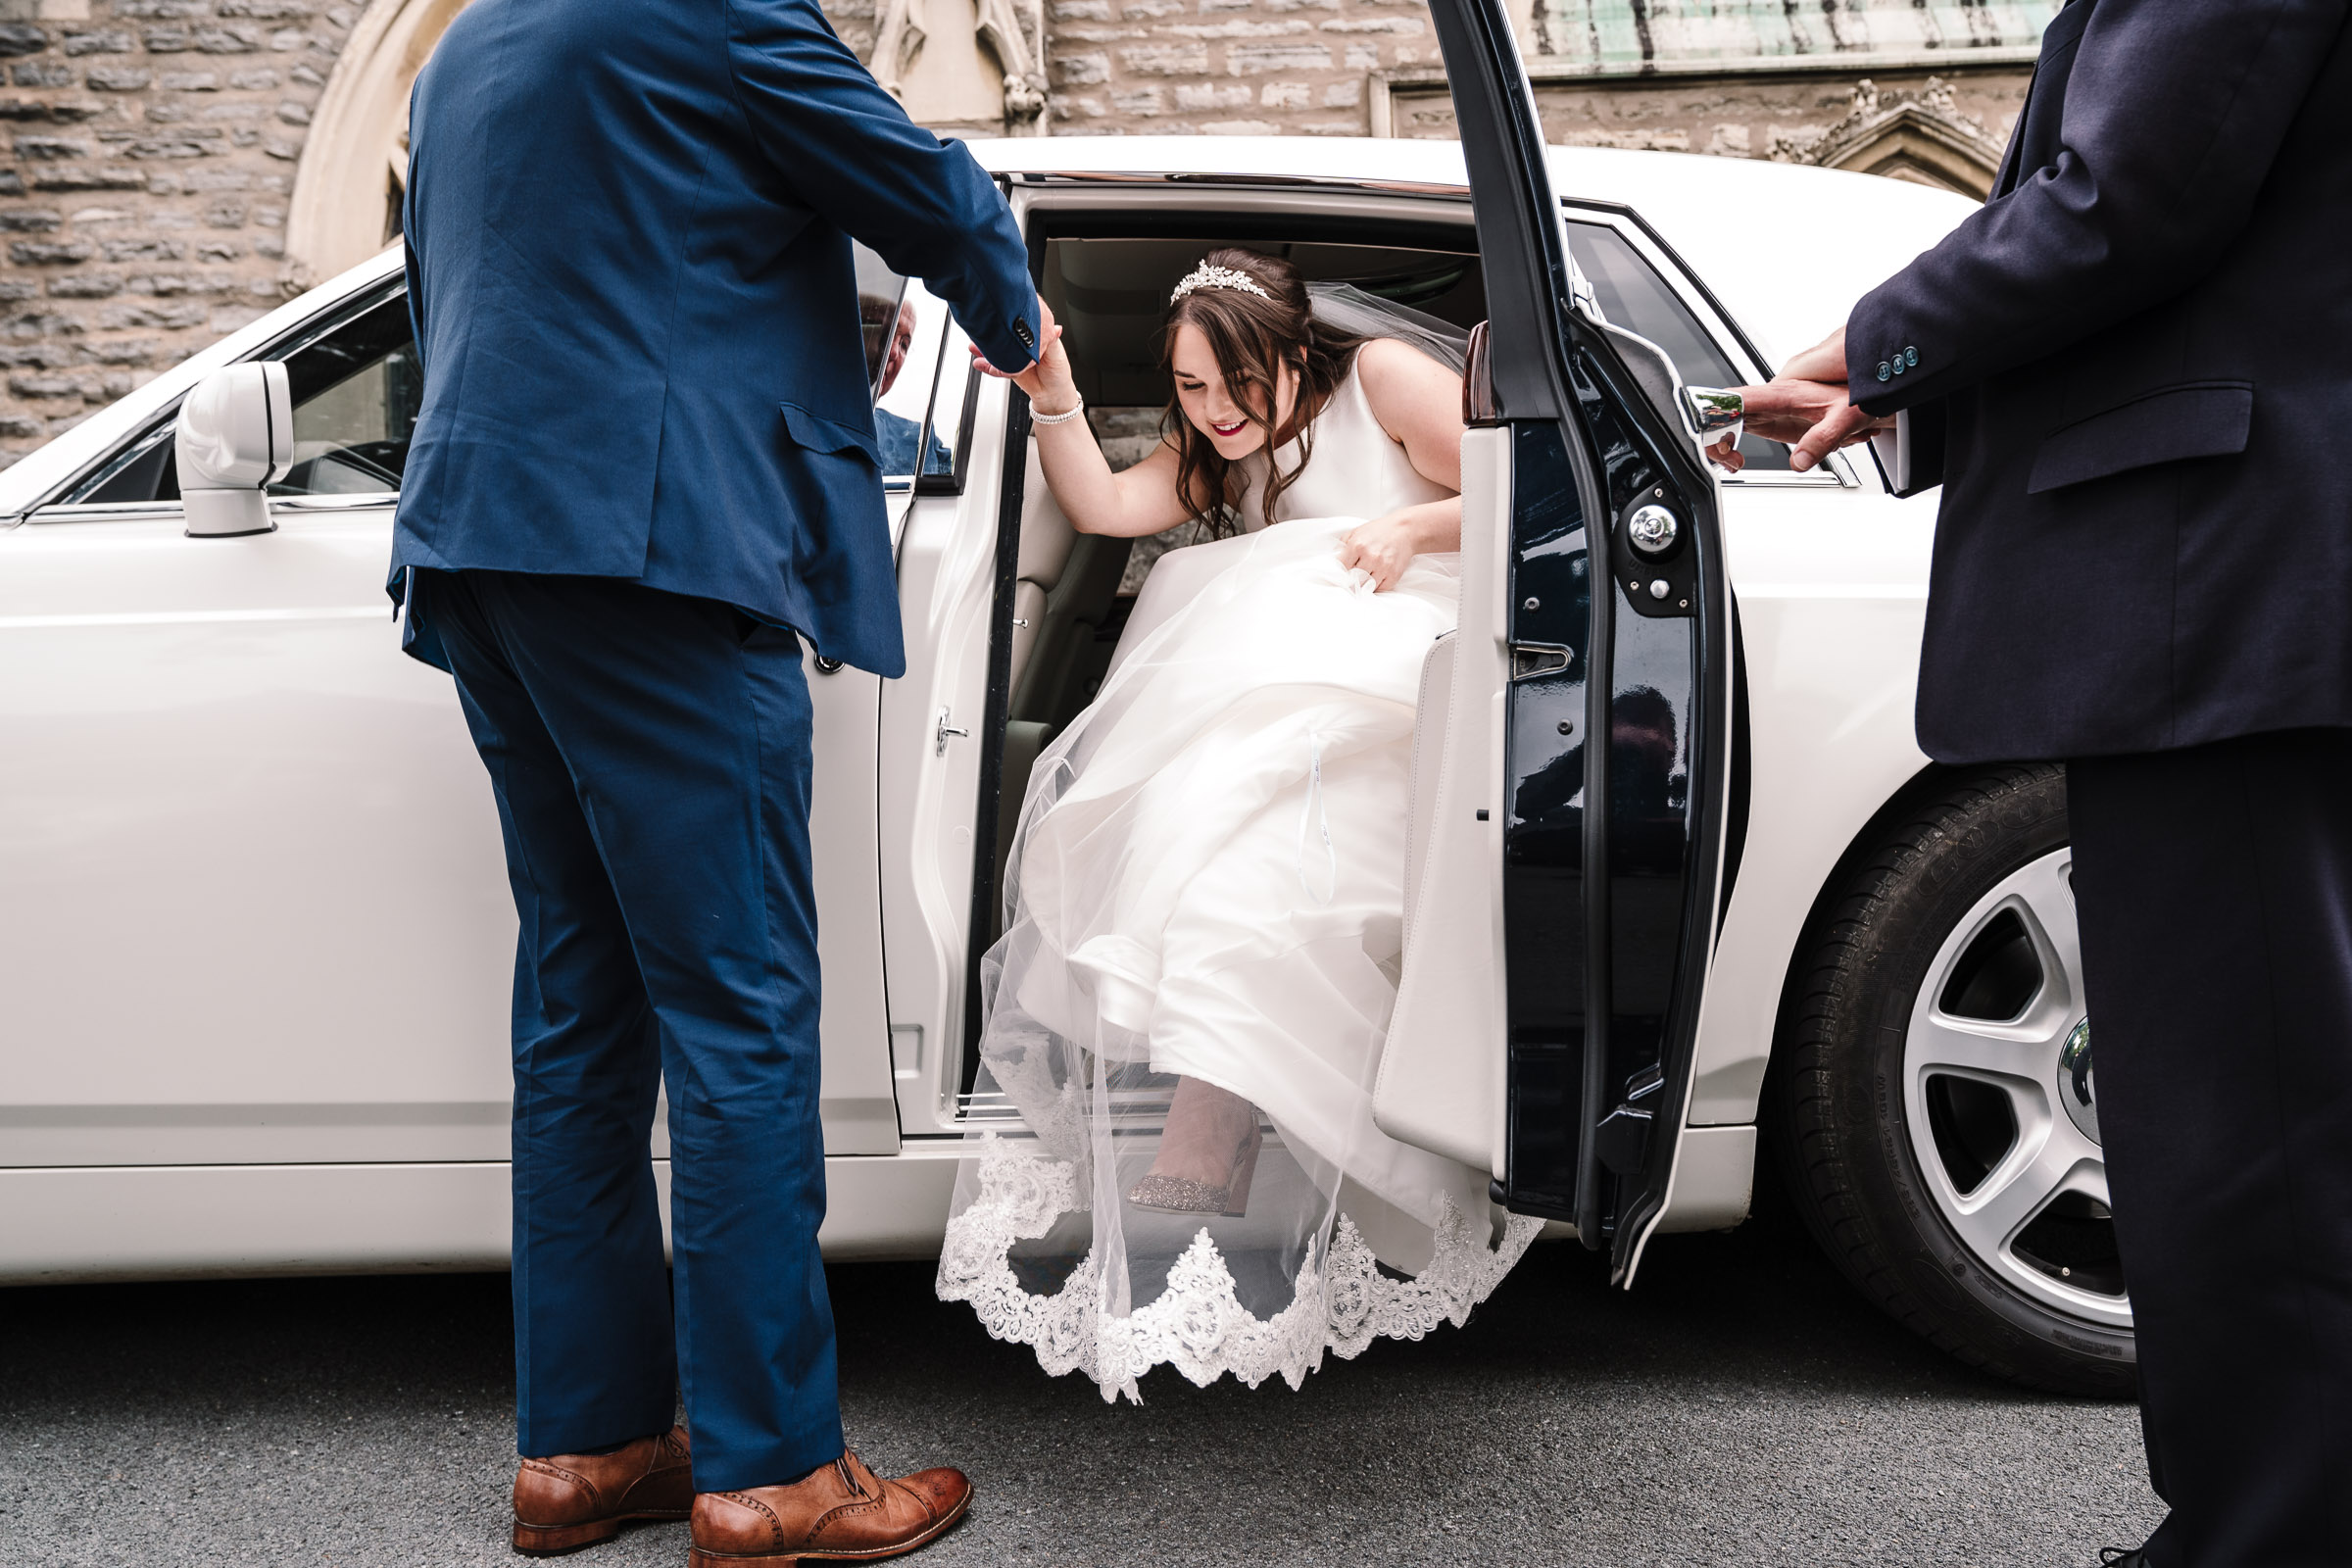 bride stepping out of wedding car outside church